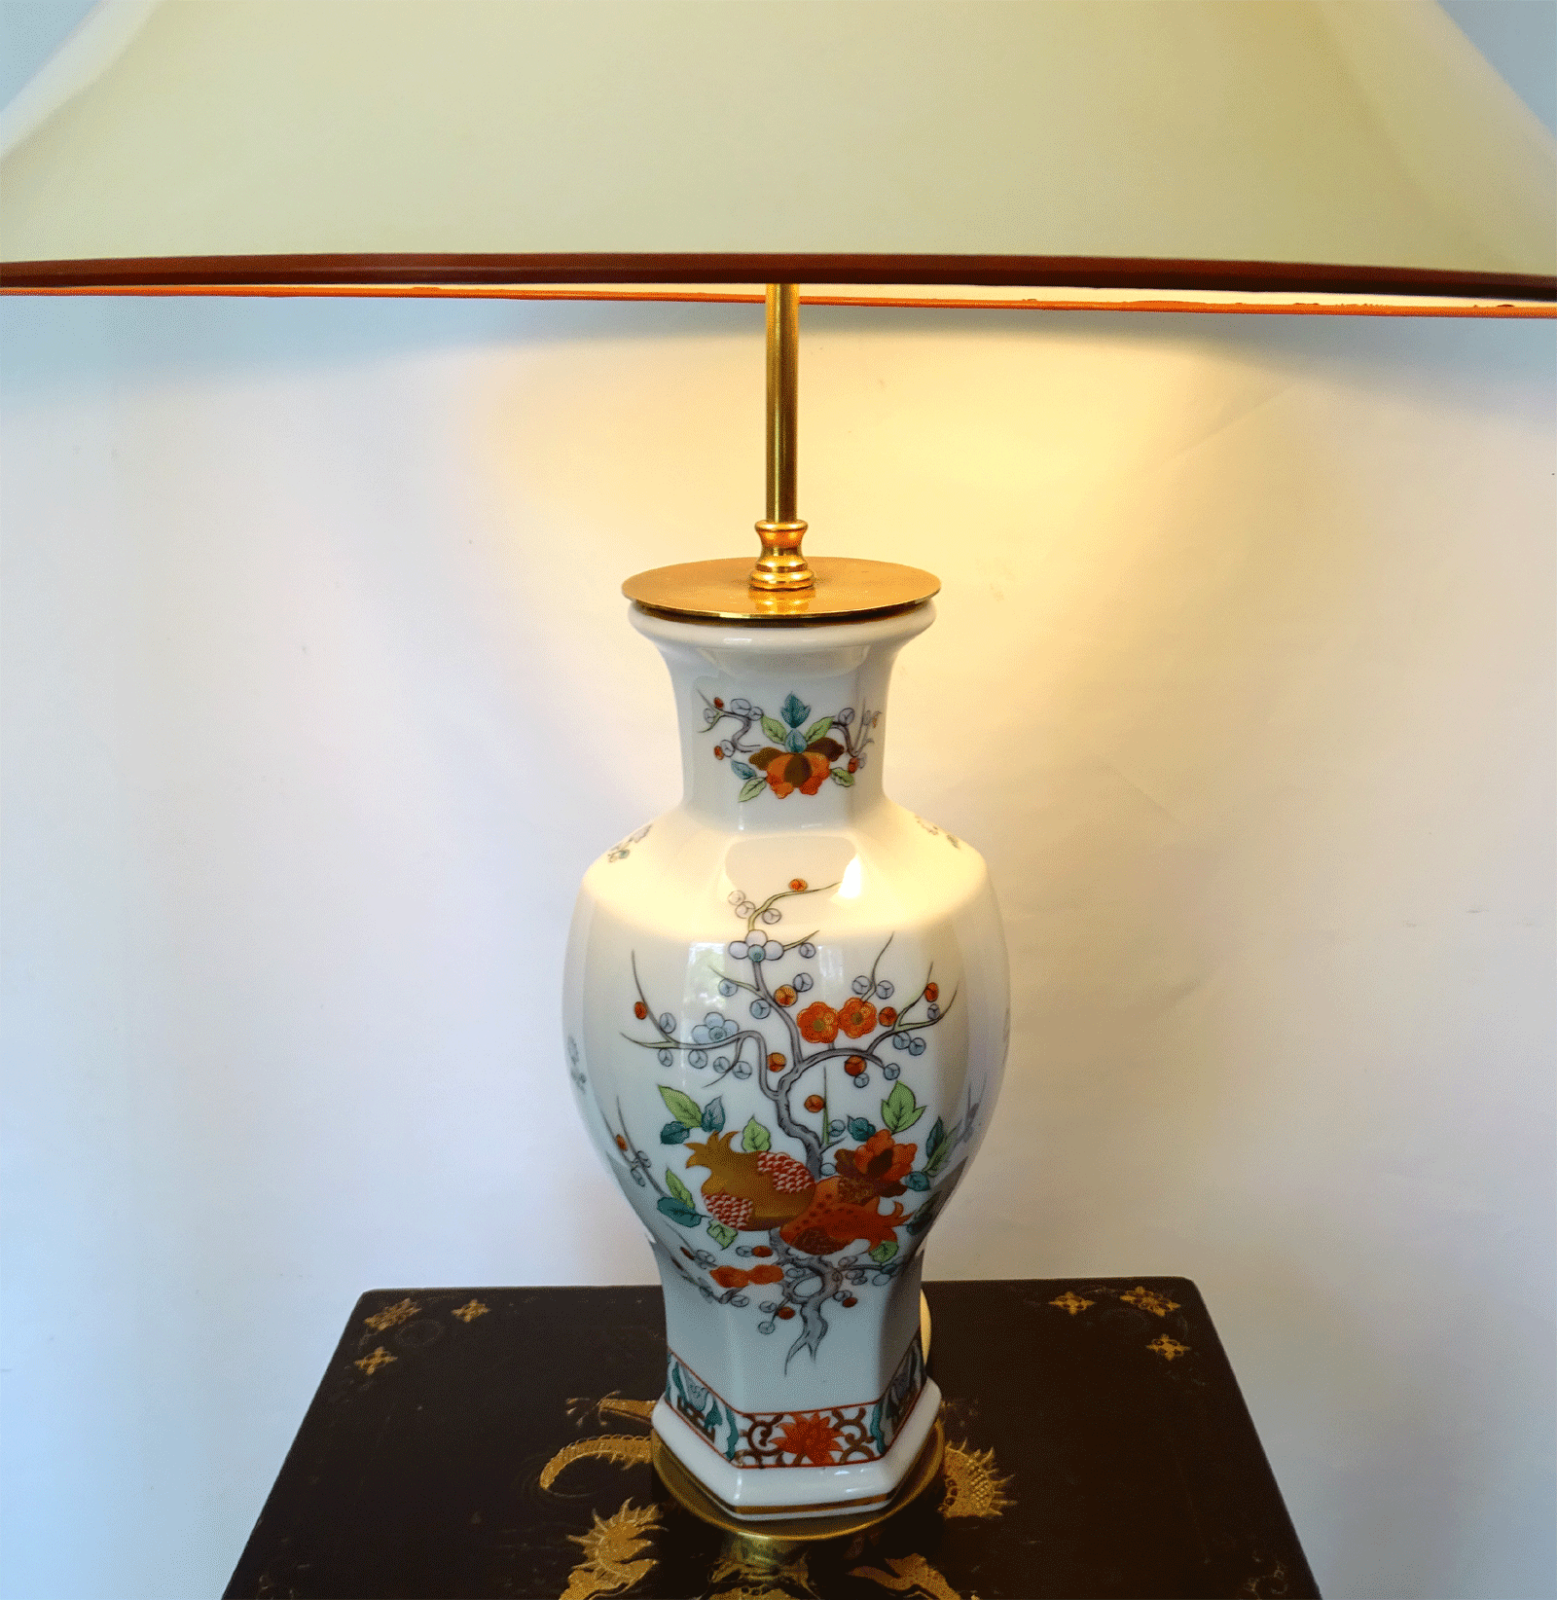 Antik Porzellan Tischlampe Lampe Antique Chinese table lamp Famille Rose